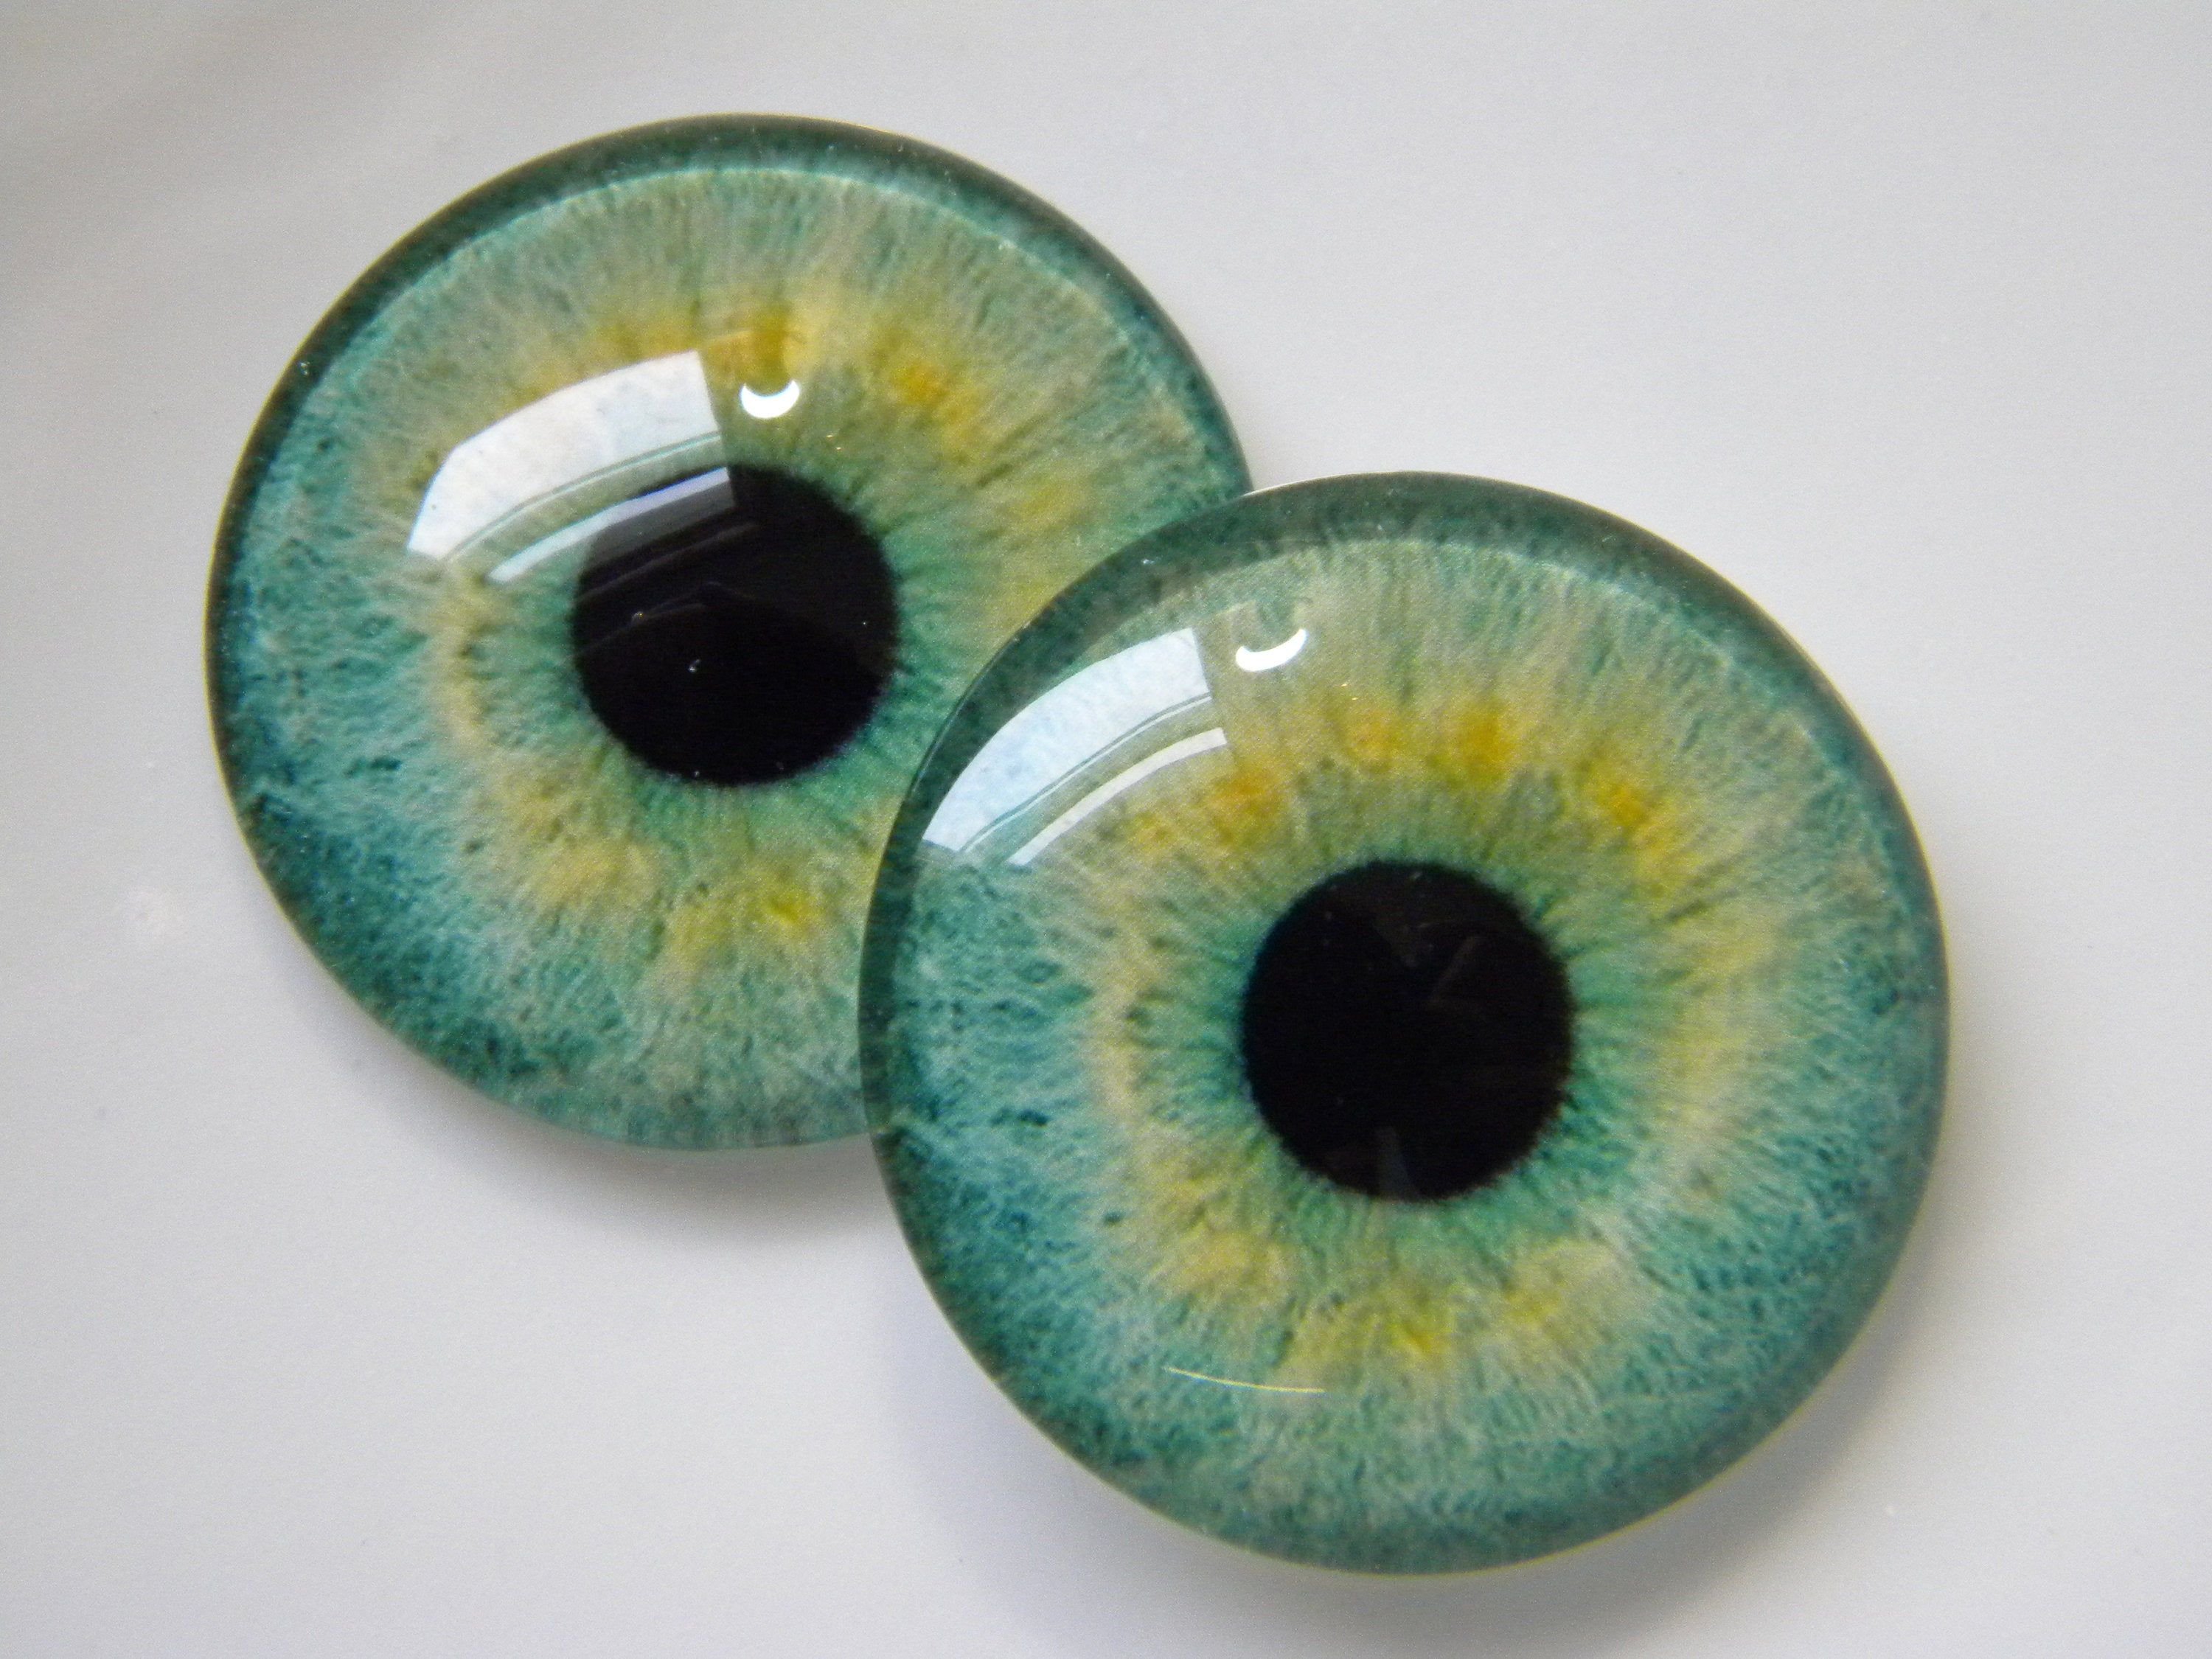 Pair of 25mm Lime Green Dragon Glass Eyes for Jewelry or Taxidermy Doll Making